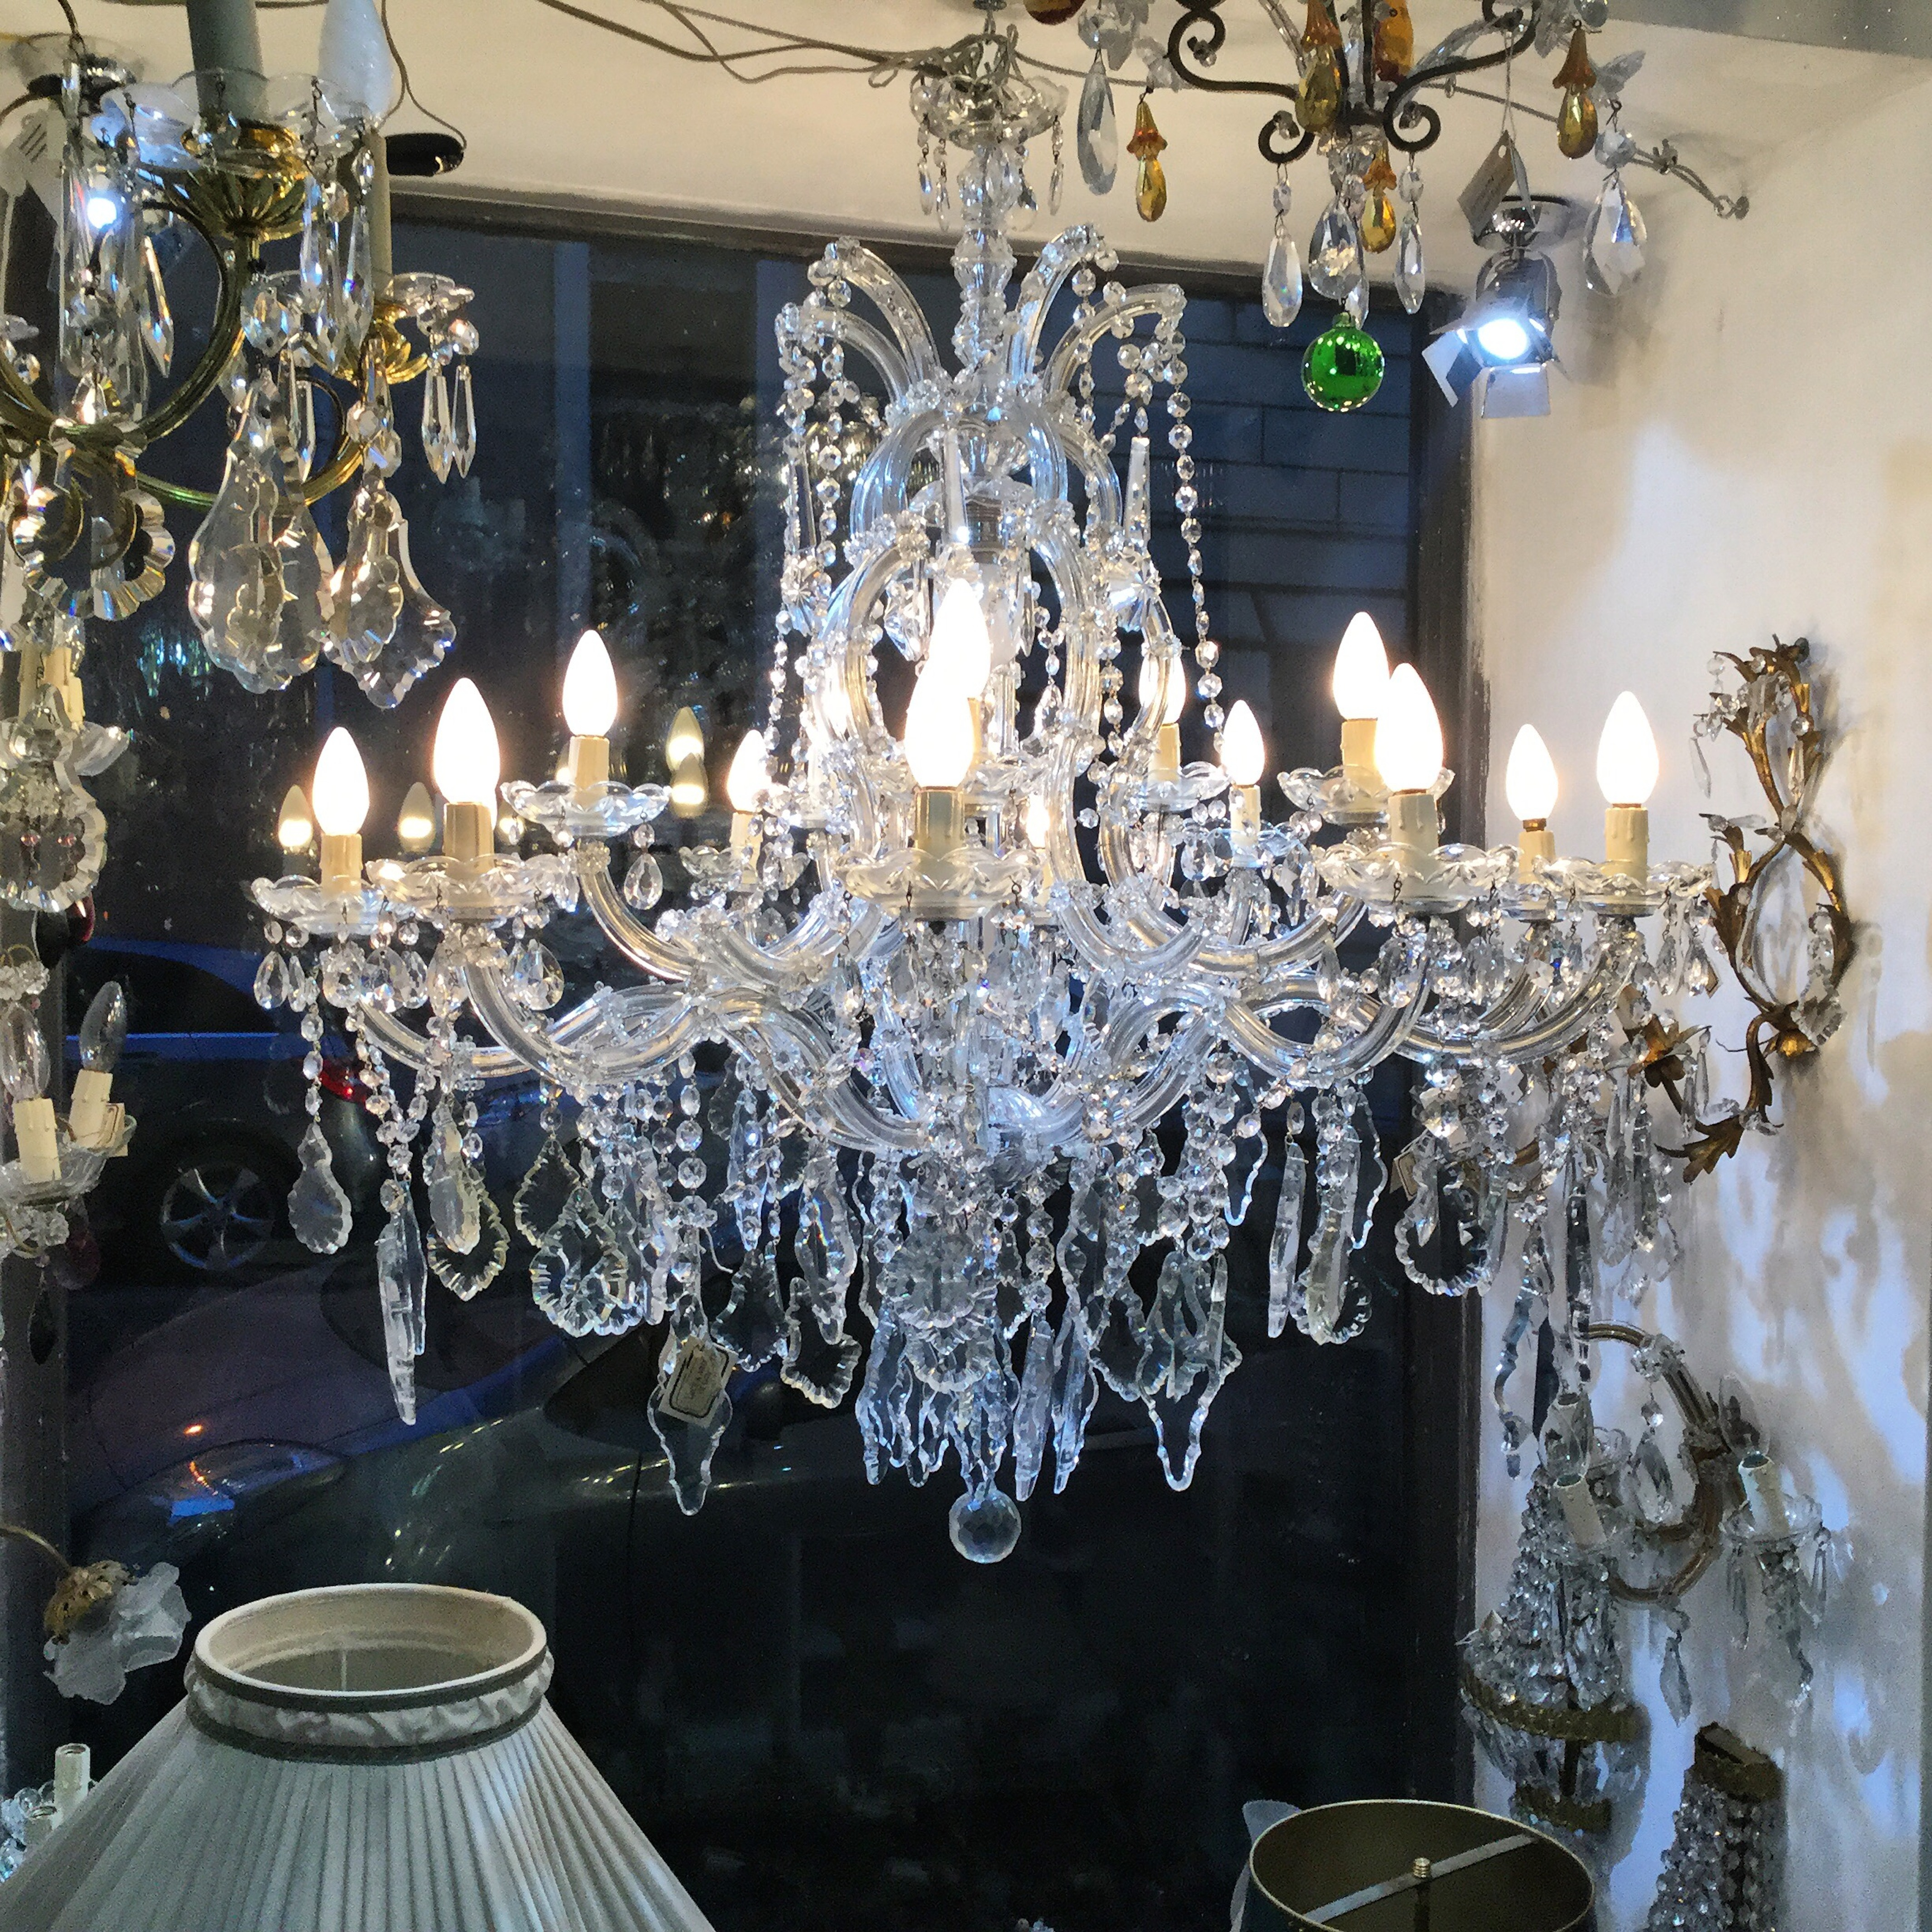 fredrick aluminum hinkley large lights save shop the chandeliers collection area our pin chandelier bowery lighting and on polished karma light for from wow original bar ramond sale in vintage